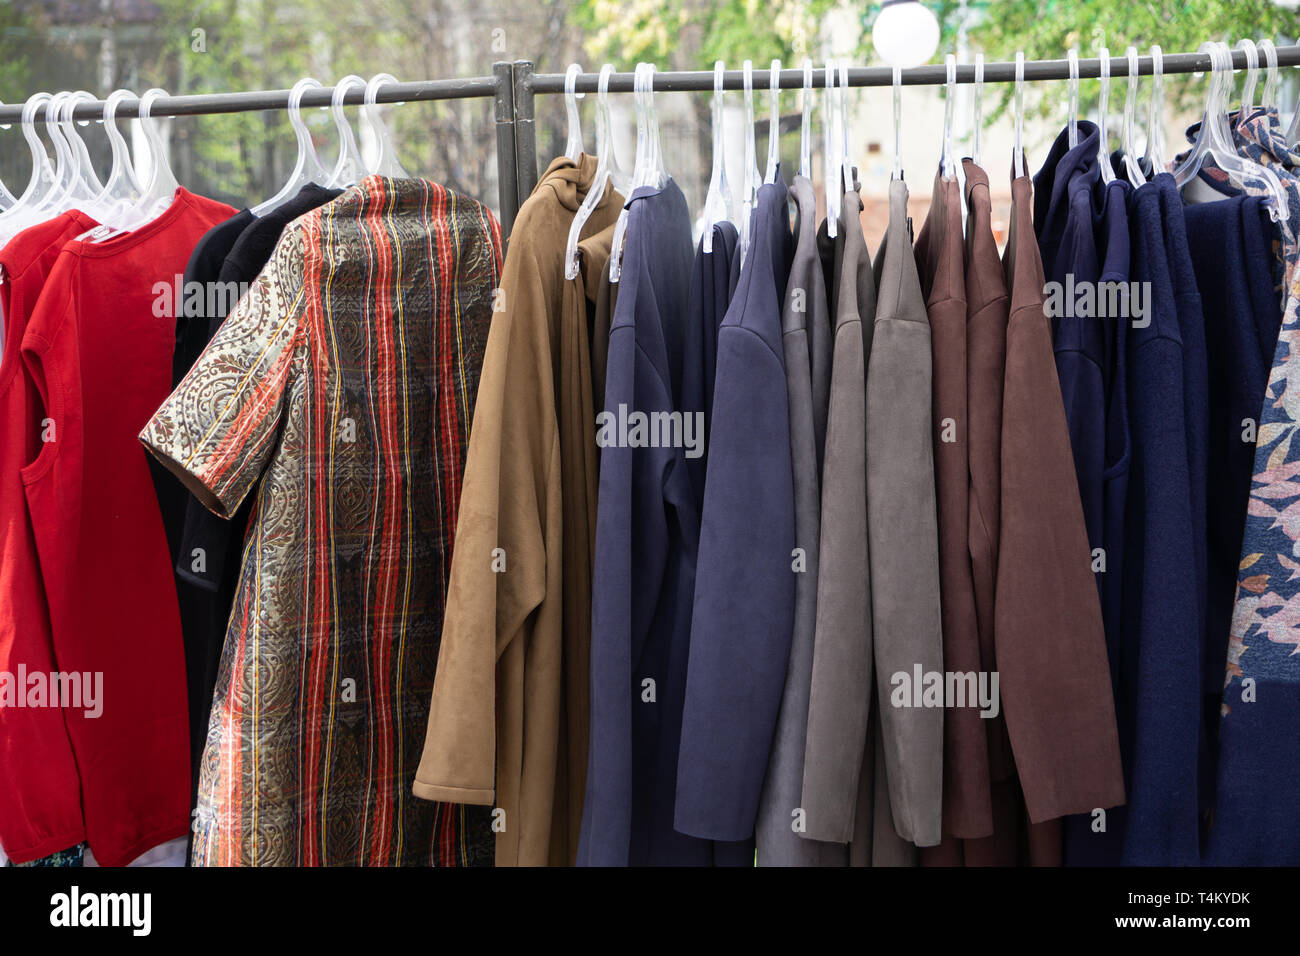 Variety of women's skirts on hangers at fashion clothing store in . - Stock Image